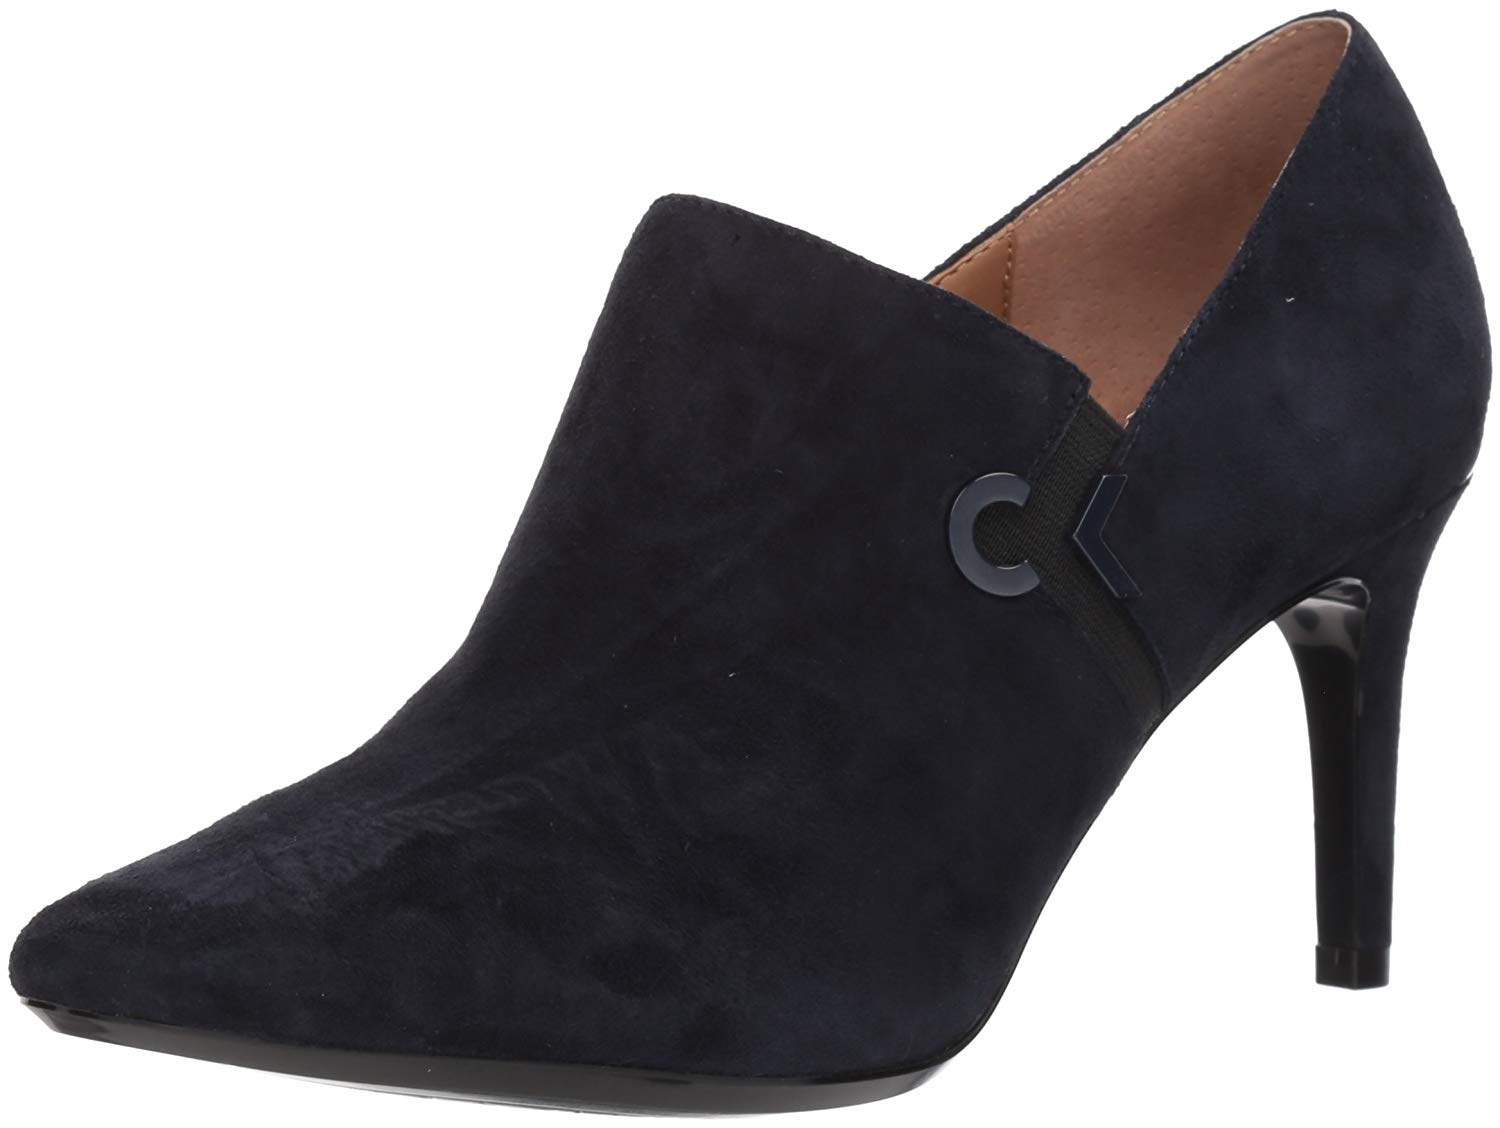 41f51865ee3 Calvin Klein Womens Joanie Leather Pointed Toe Ankle Fashion Boots ...